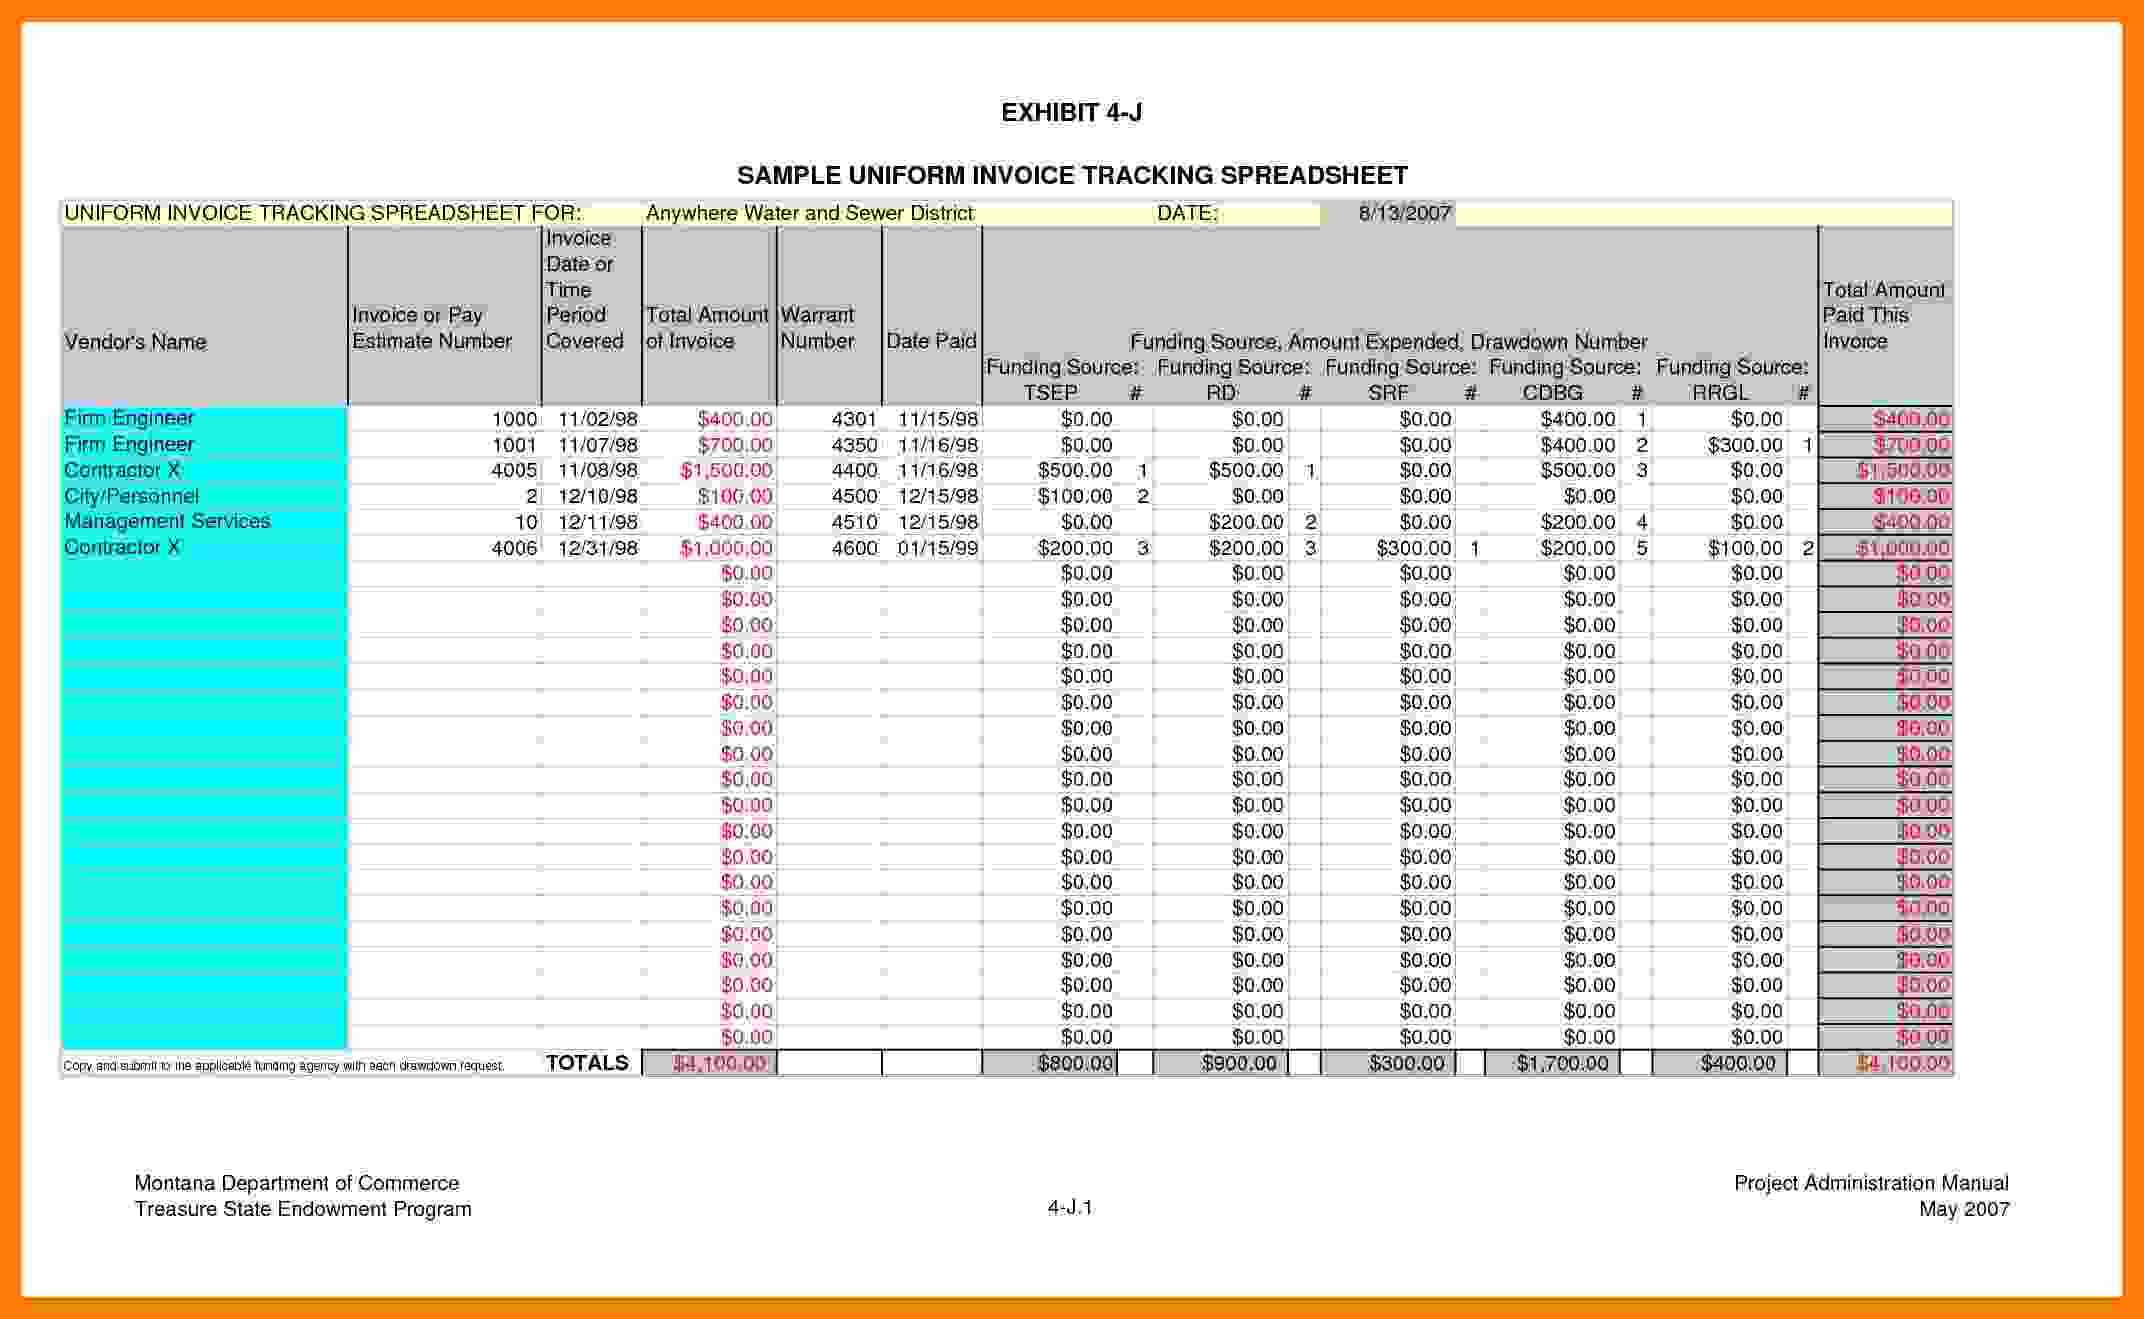 Purchase Order Tracking Excel Spreadsheet On Wedding Budget With Purchase Order Spreadsheet